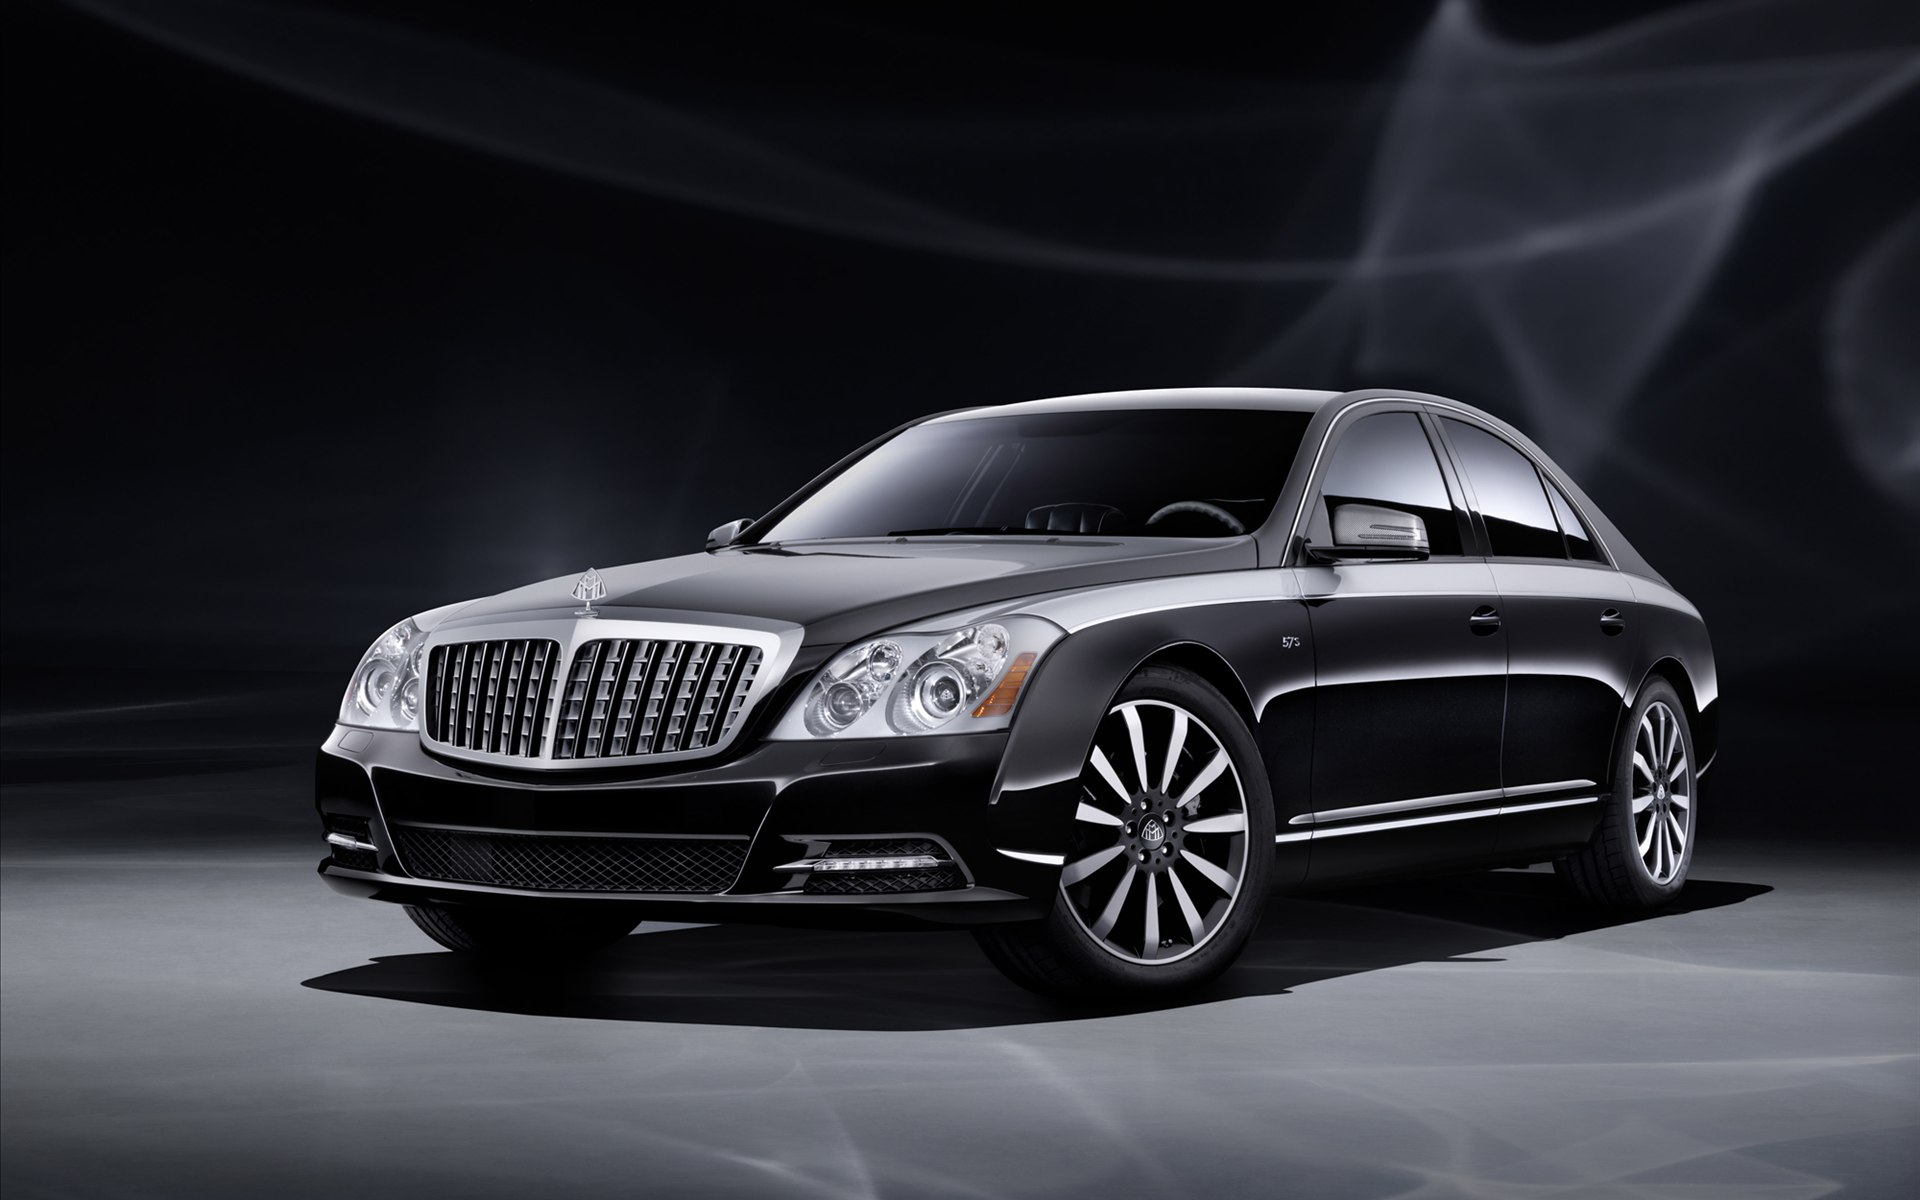 Toyota Of Pullman >> 2012 Maybach Edition 125 Wallpaper | HD Car Wallpapers | ID #2242